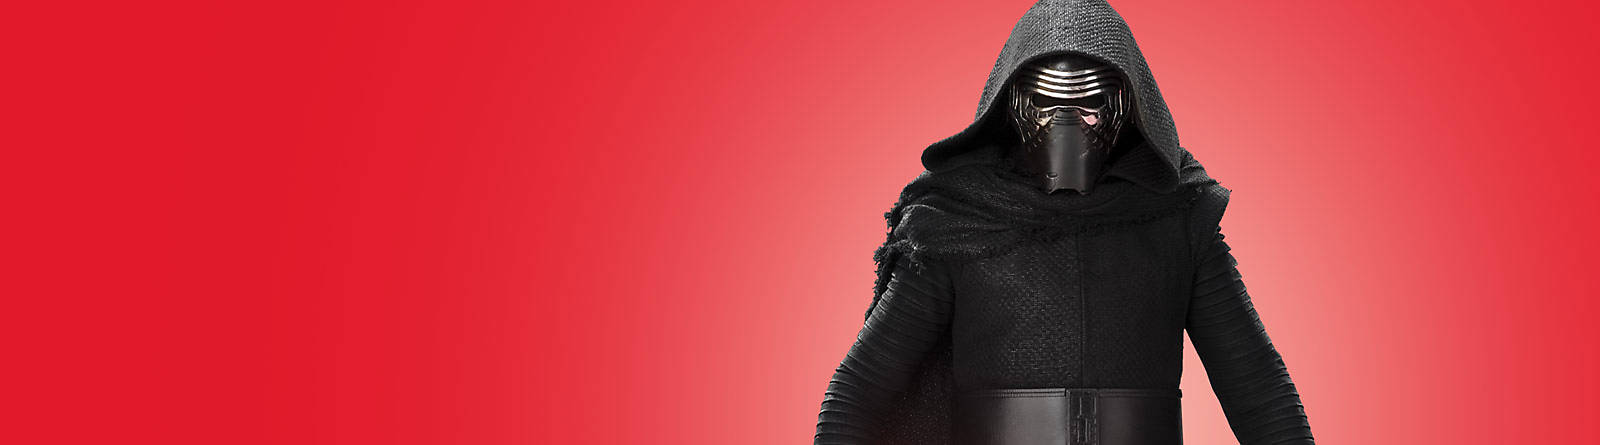 Kylo Ren Join the dark side with our range of Kylo Ren from Star Wars merchandise including toys, figurines, collectibles and more